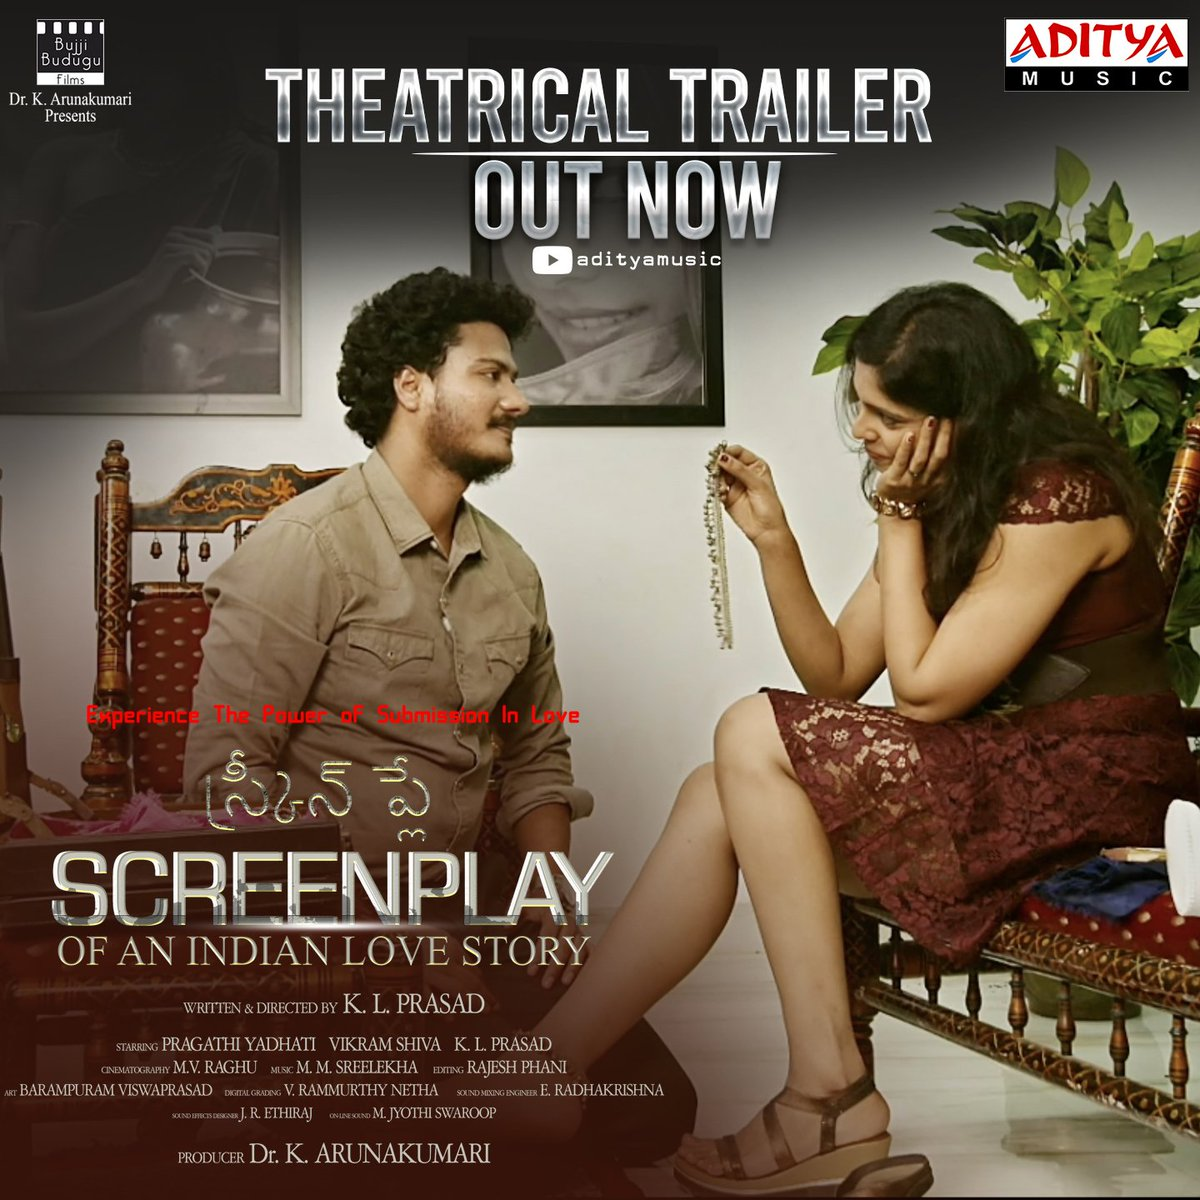 #ScreenPlay Movie Theatrical Trailer Out Now  ►  Experience The Power Of Submission In Love.  Music By #MMSreeLekha   Directed By #KLPrasad  #PragathiYadhati #VikramShiva #DrKArunakumari